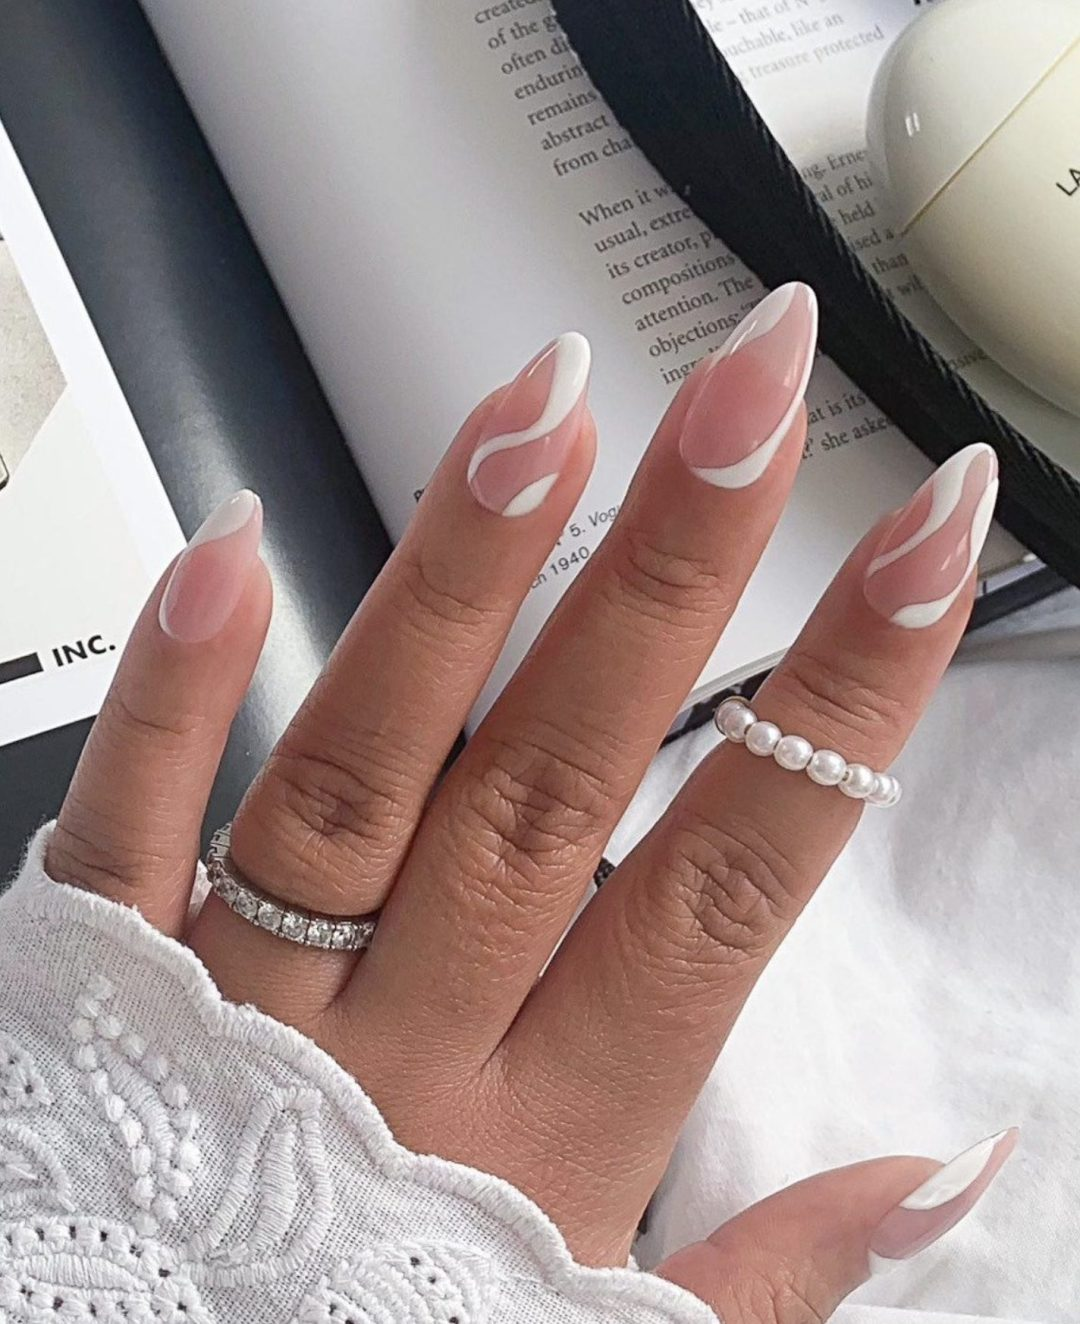 White abstract nails with swirls and lines